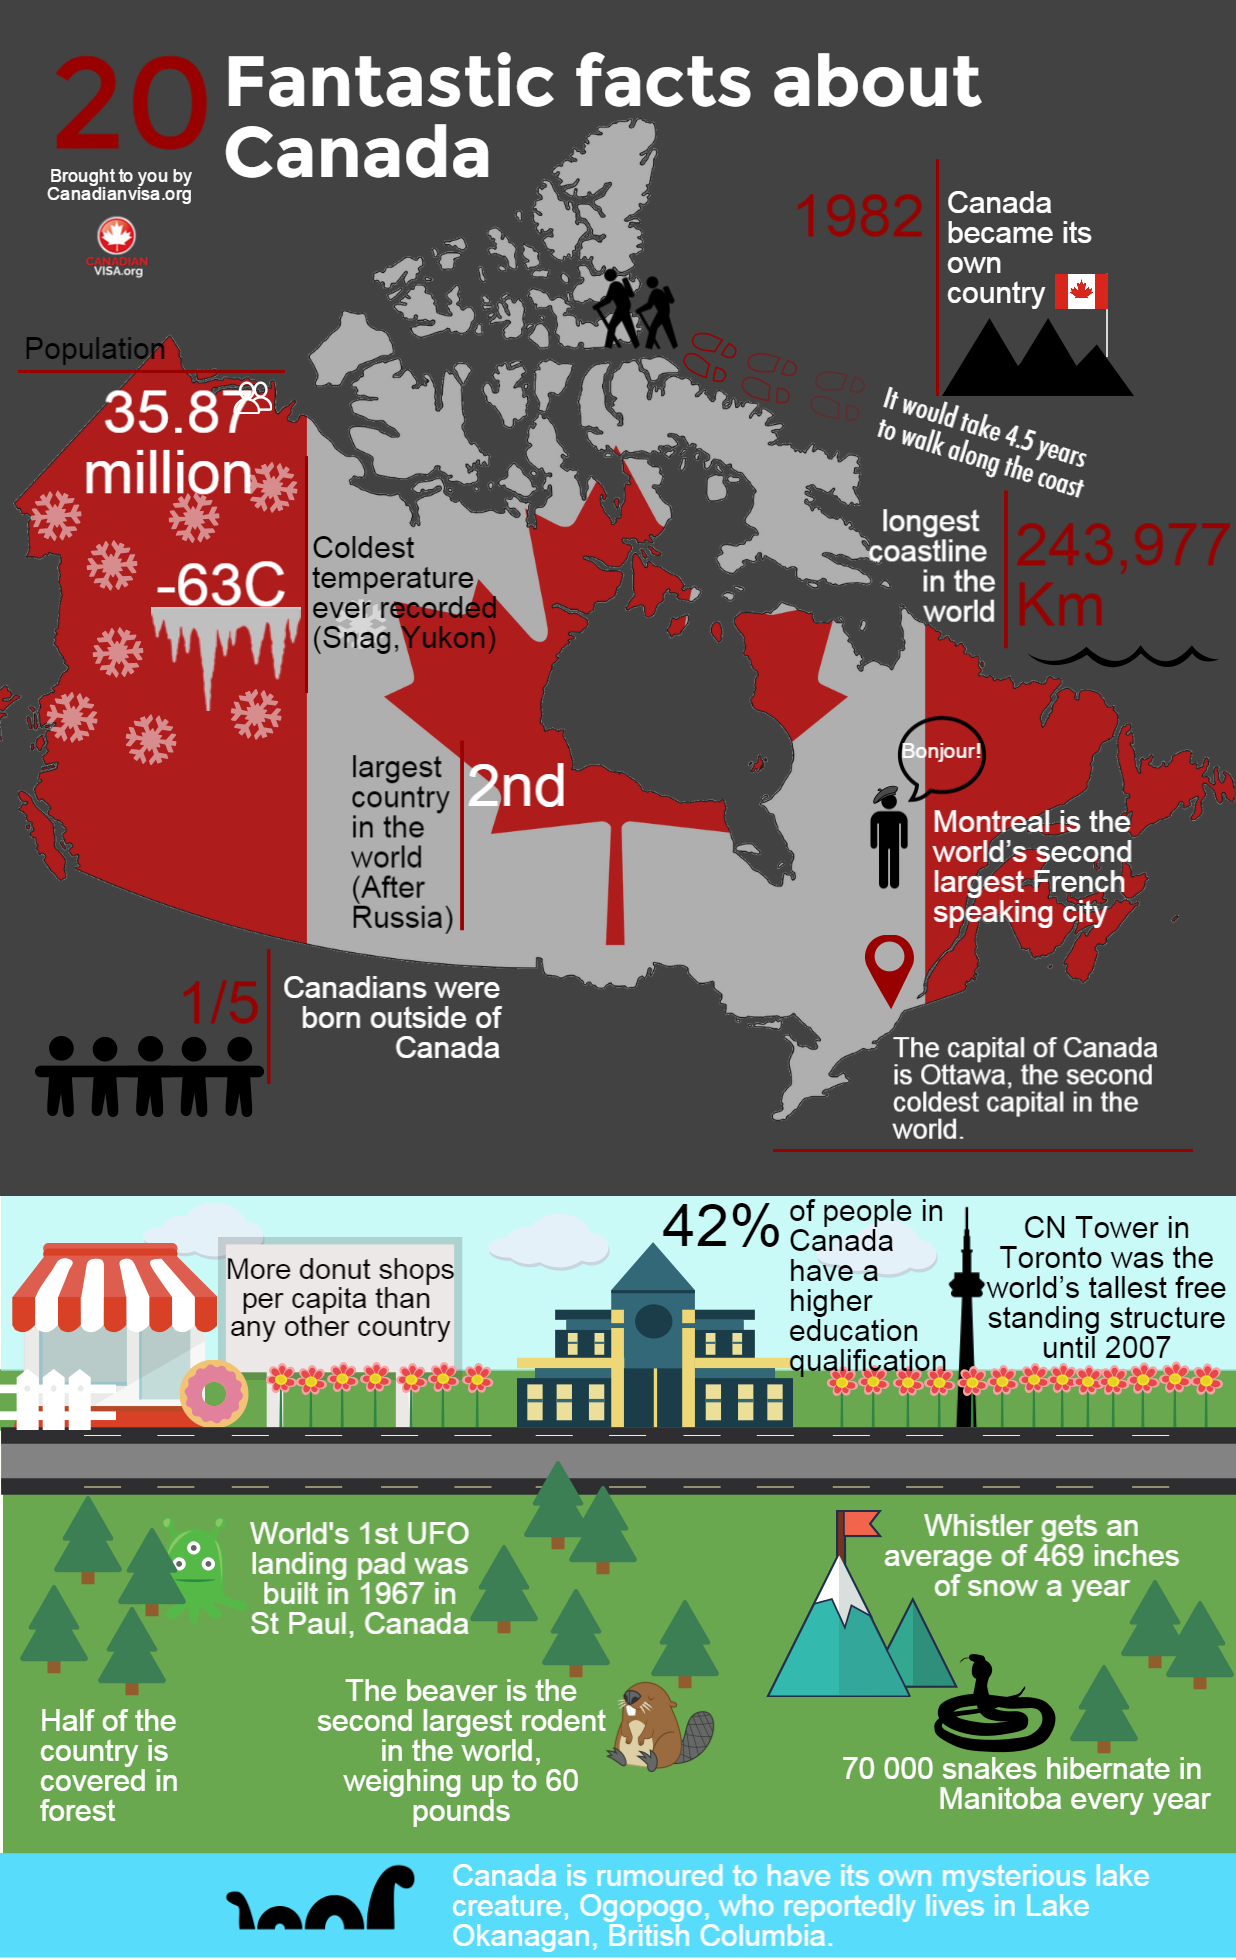 infographic 20 fantastics facts about Canada